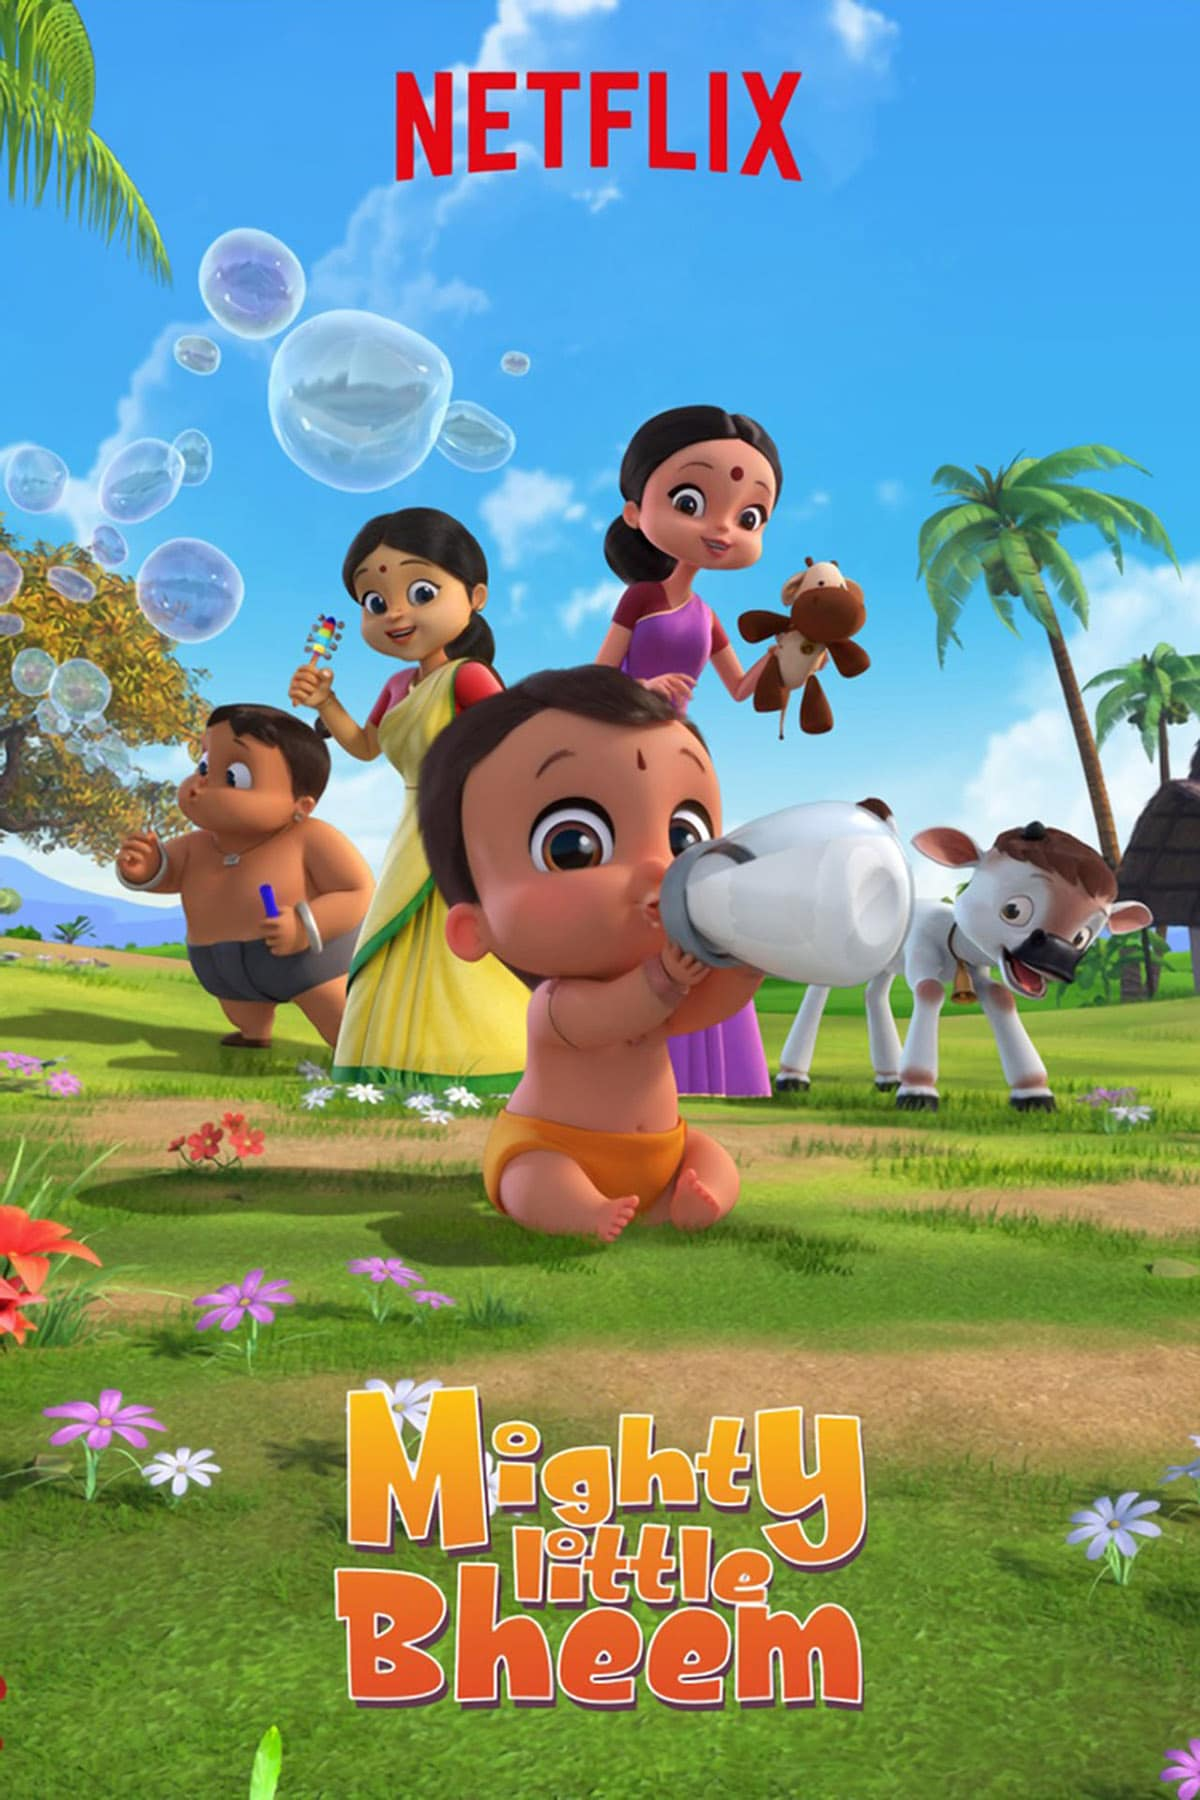 mighty little bheem poster Mighty Little Bheem